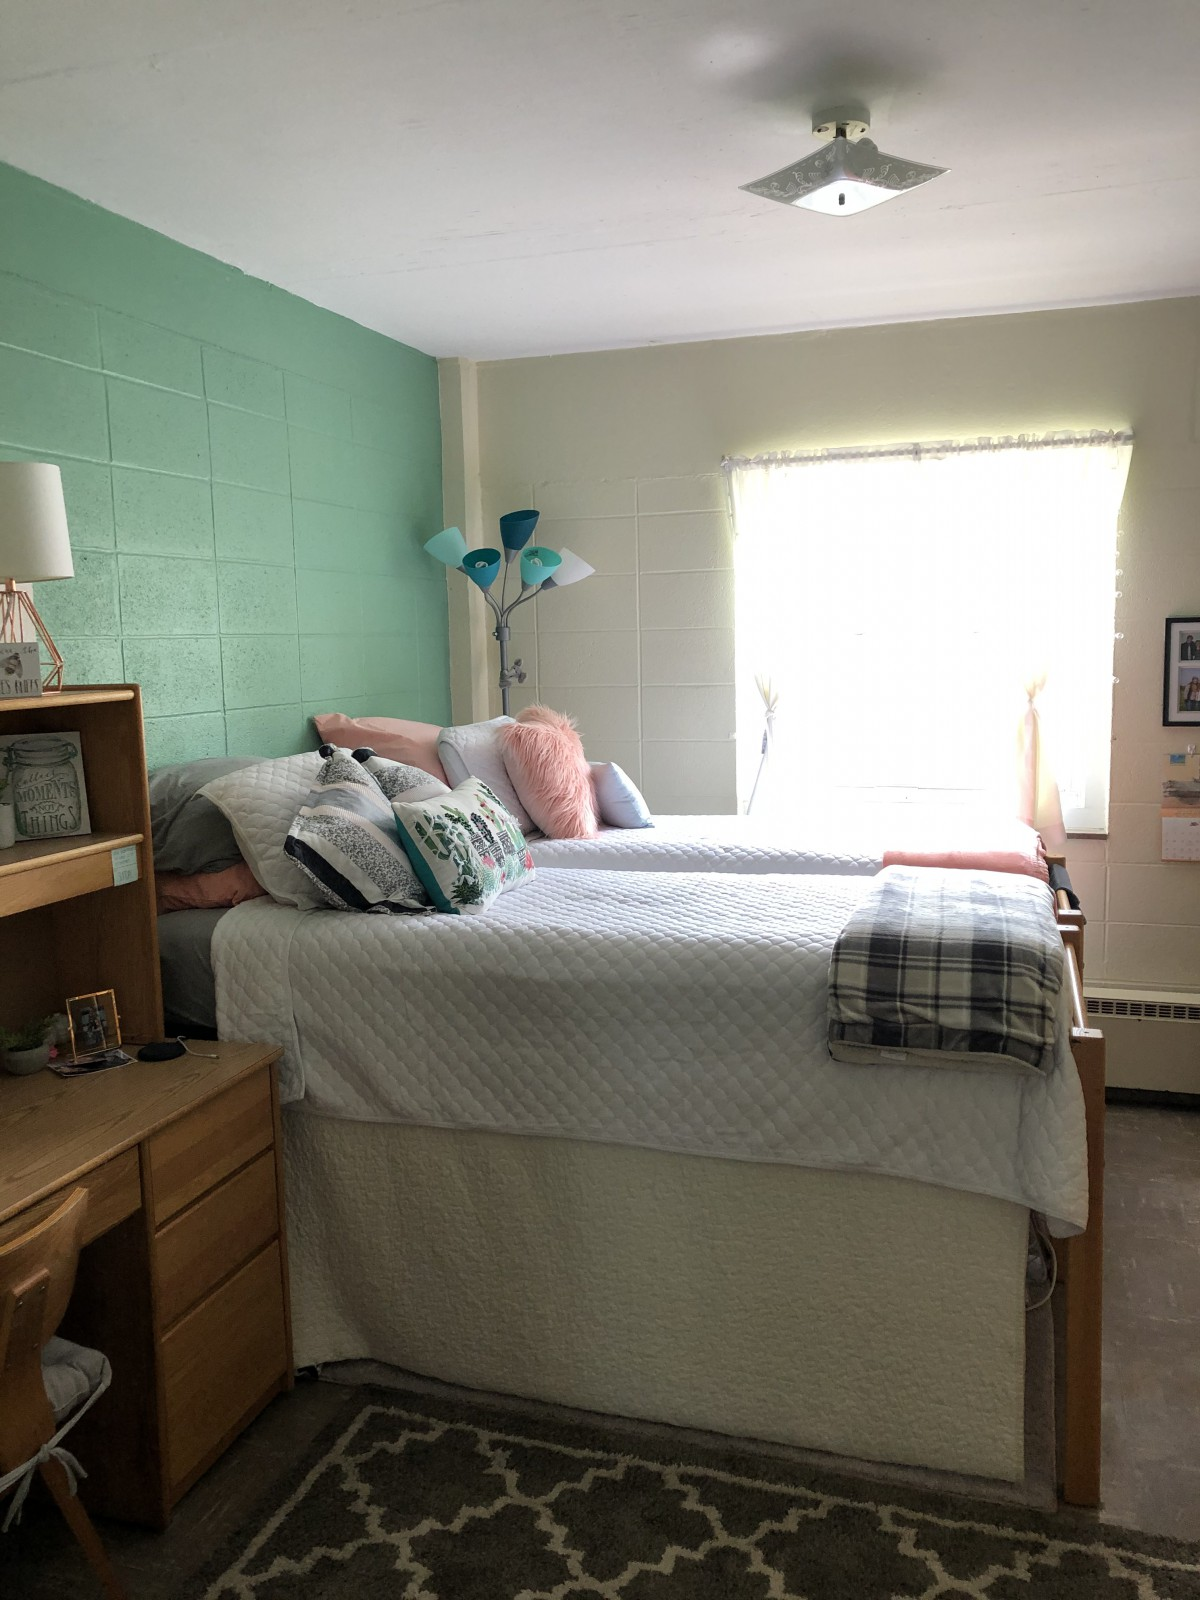 Moeller Dorm Room